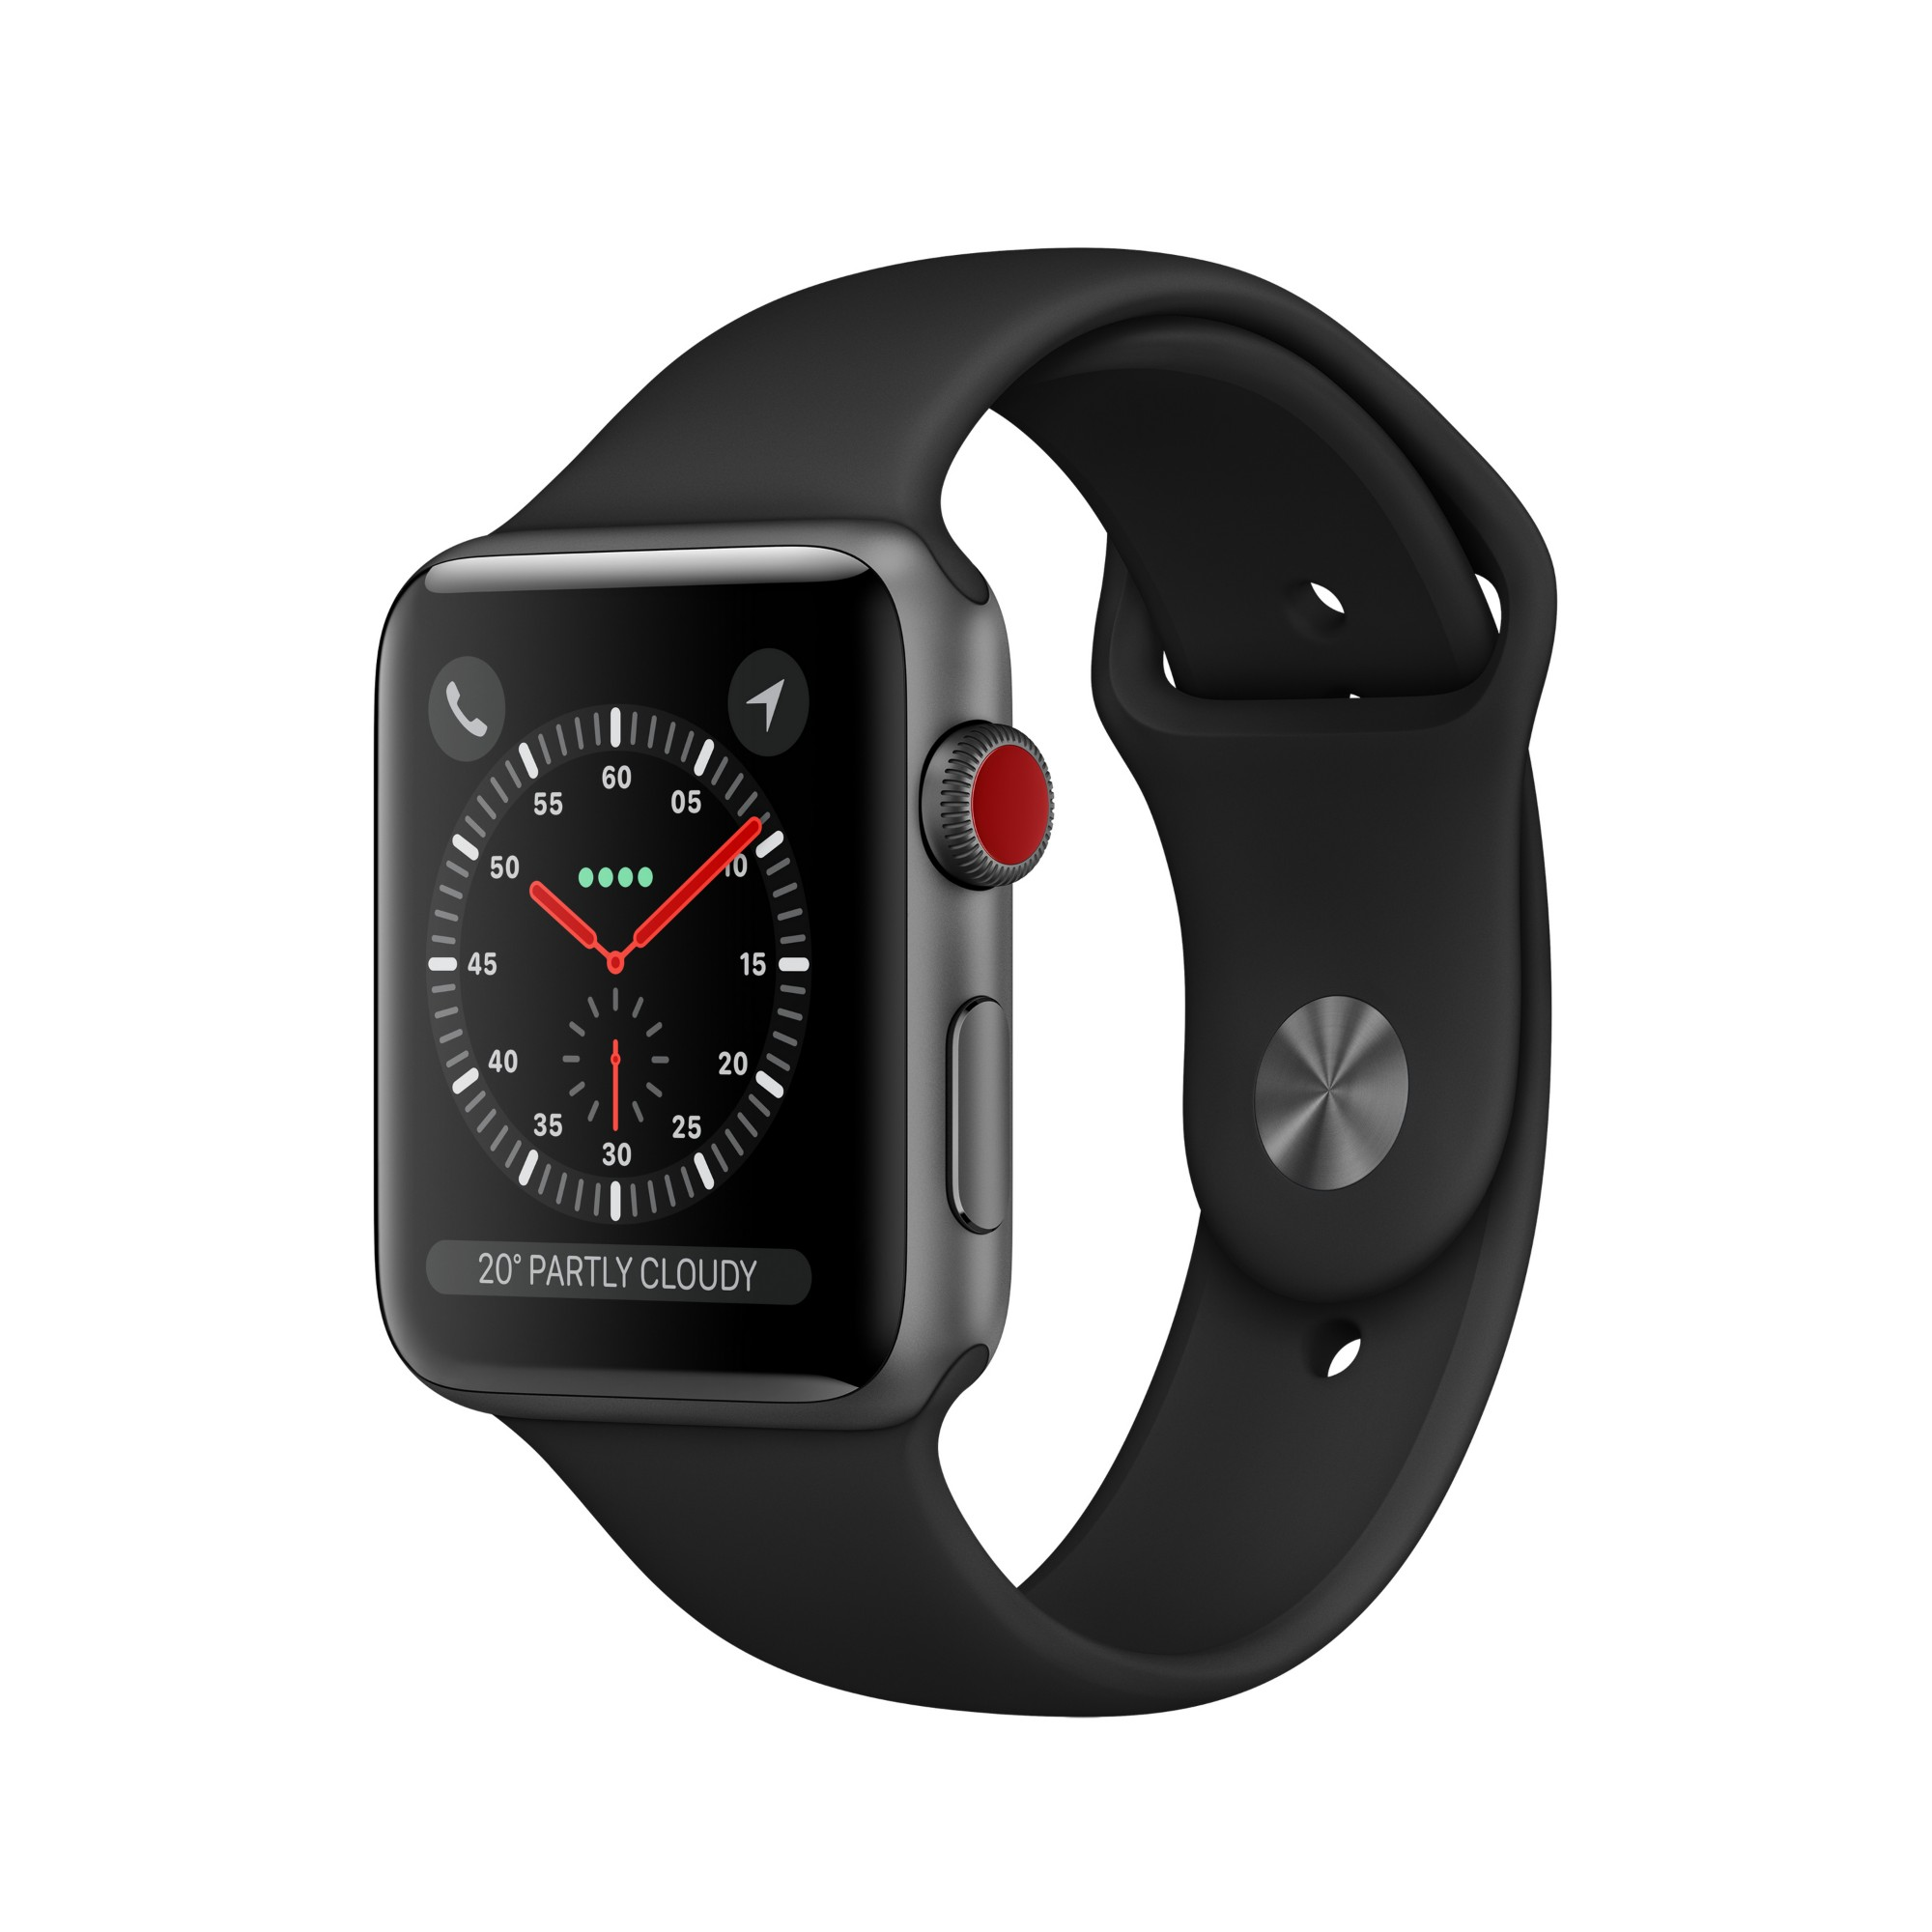 APPLE MTGP2B/A WATCH SERIES 3 SMARTWATCH GREY OLED CELLULAR GPS (SATELLITE)